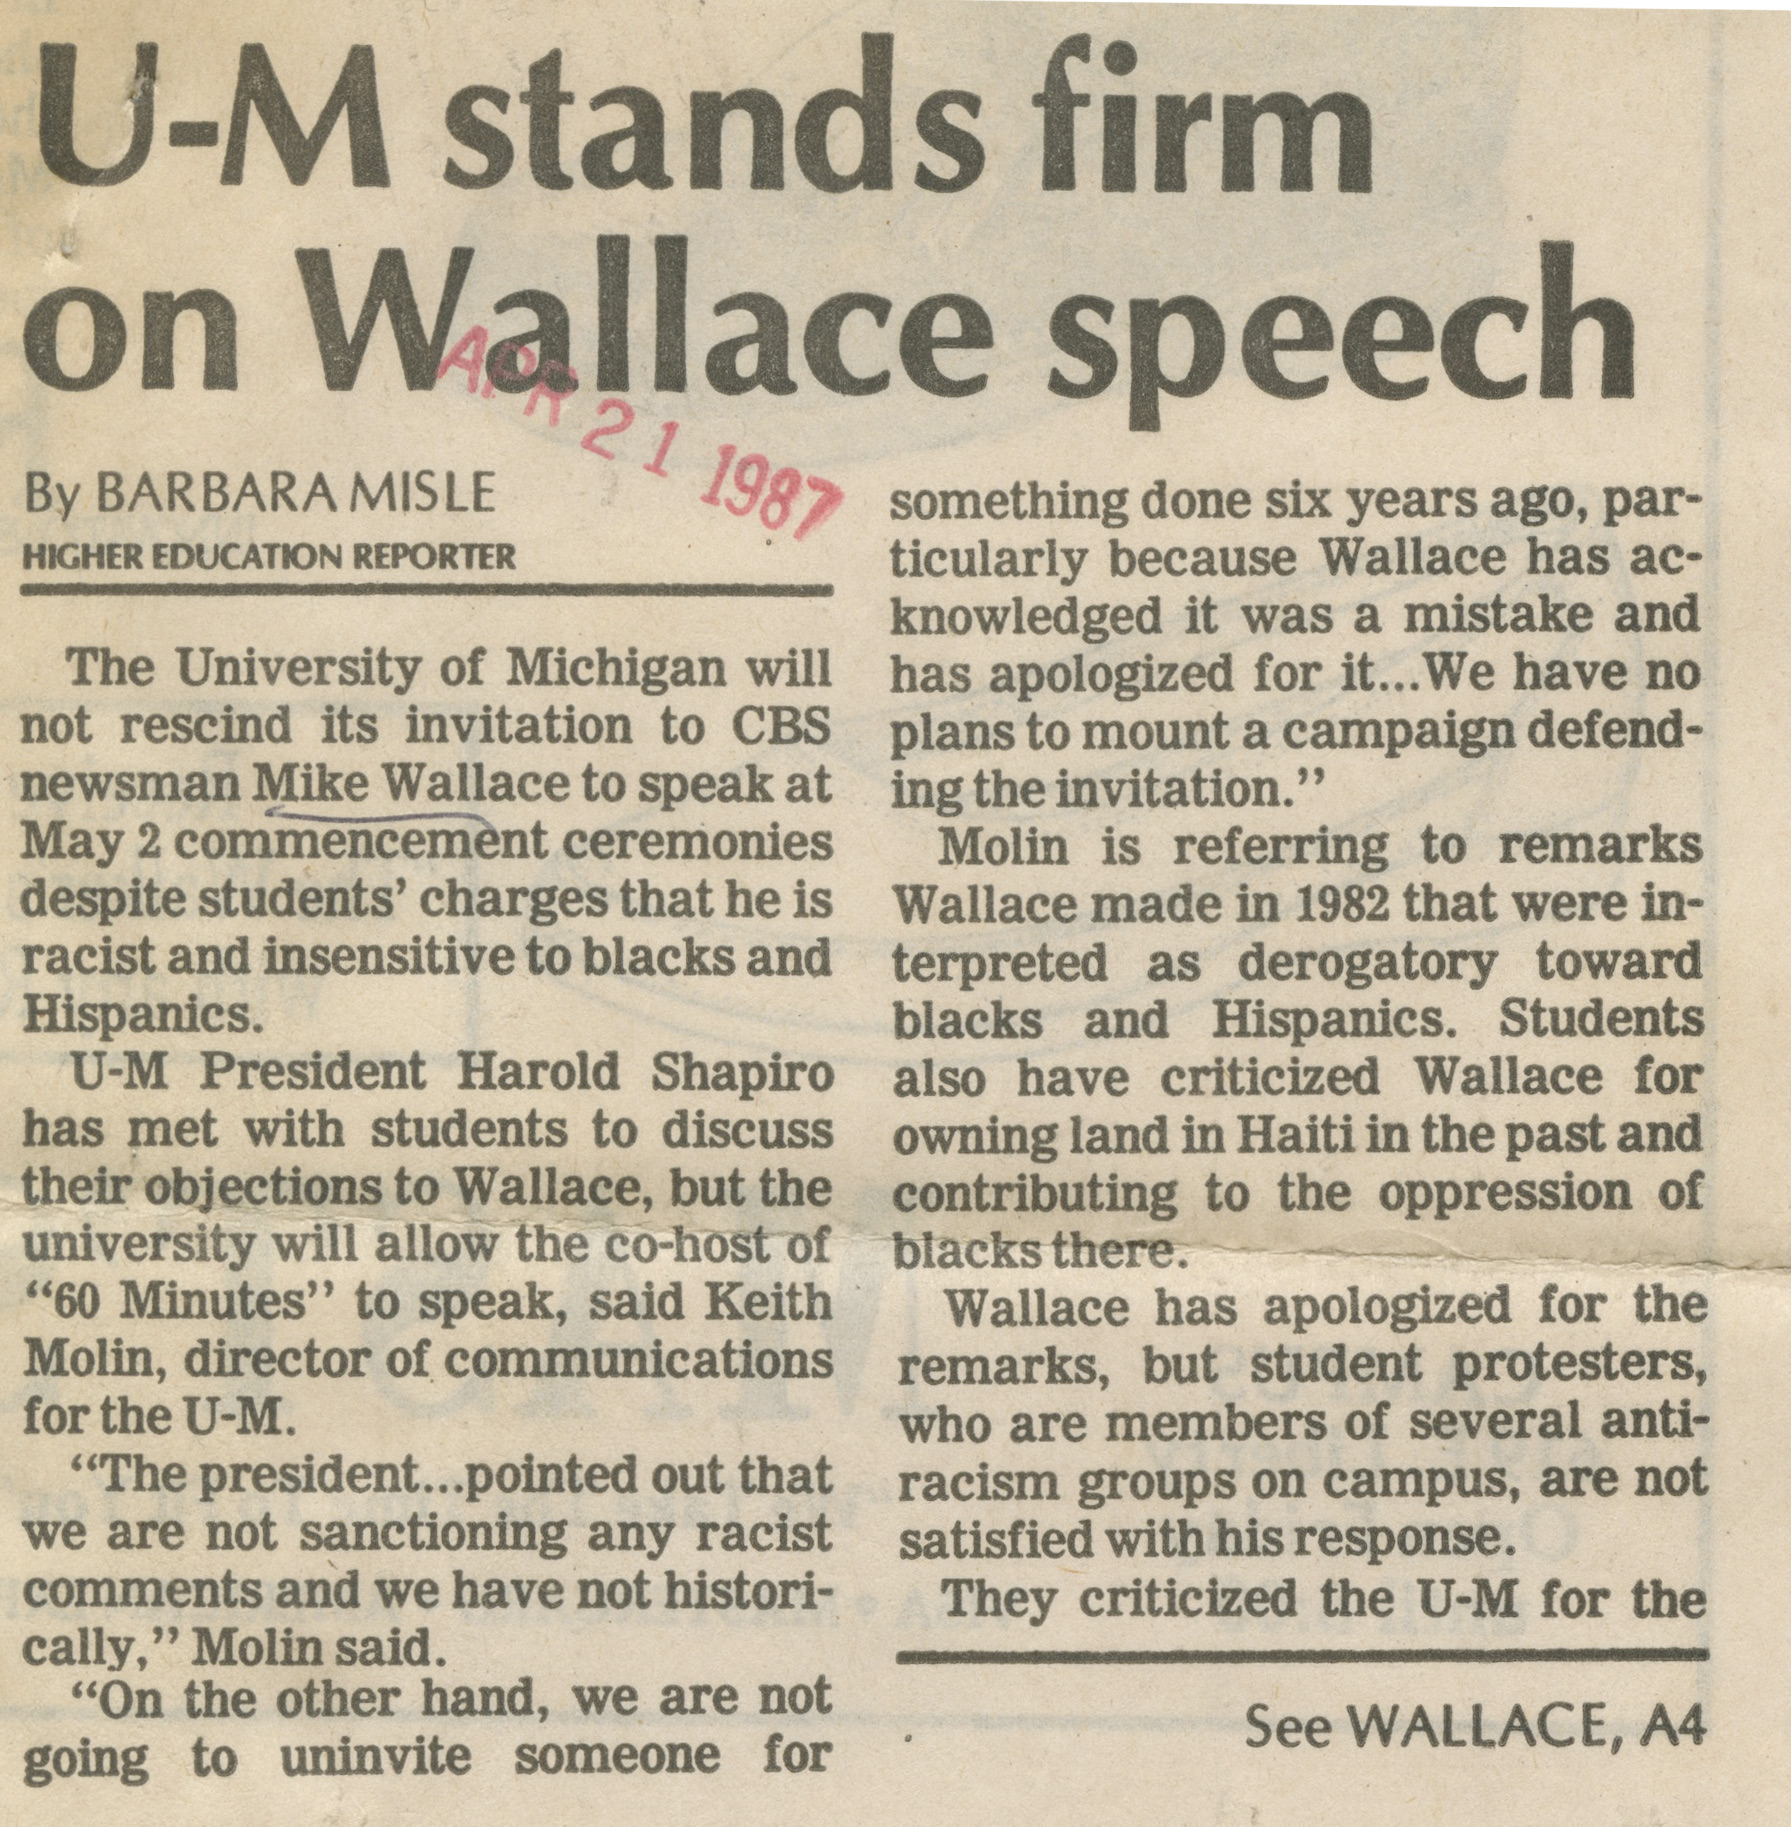 U-M Stands Firm On Wallace Speech image